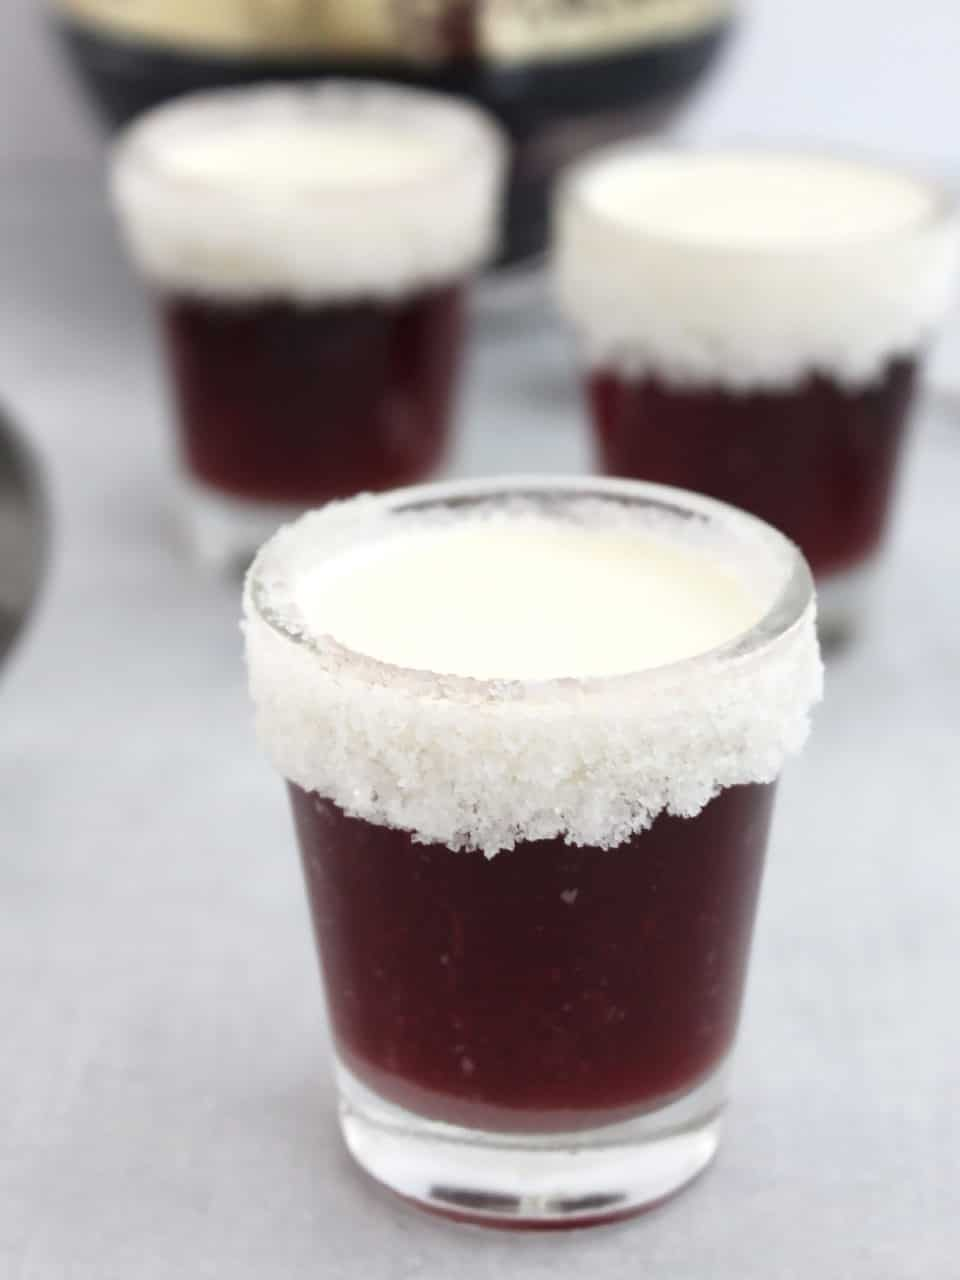 Three chambord shots topped with cream ready to drink.